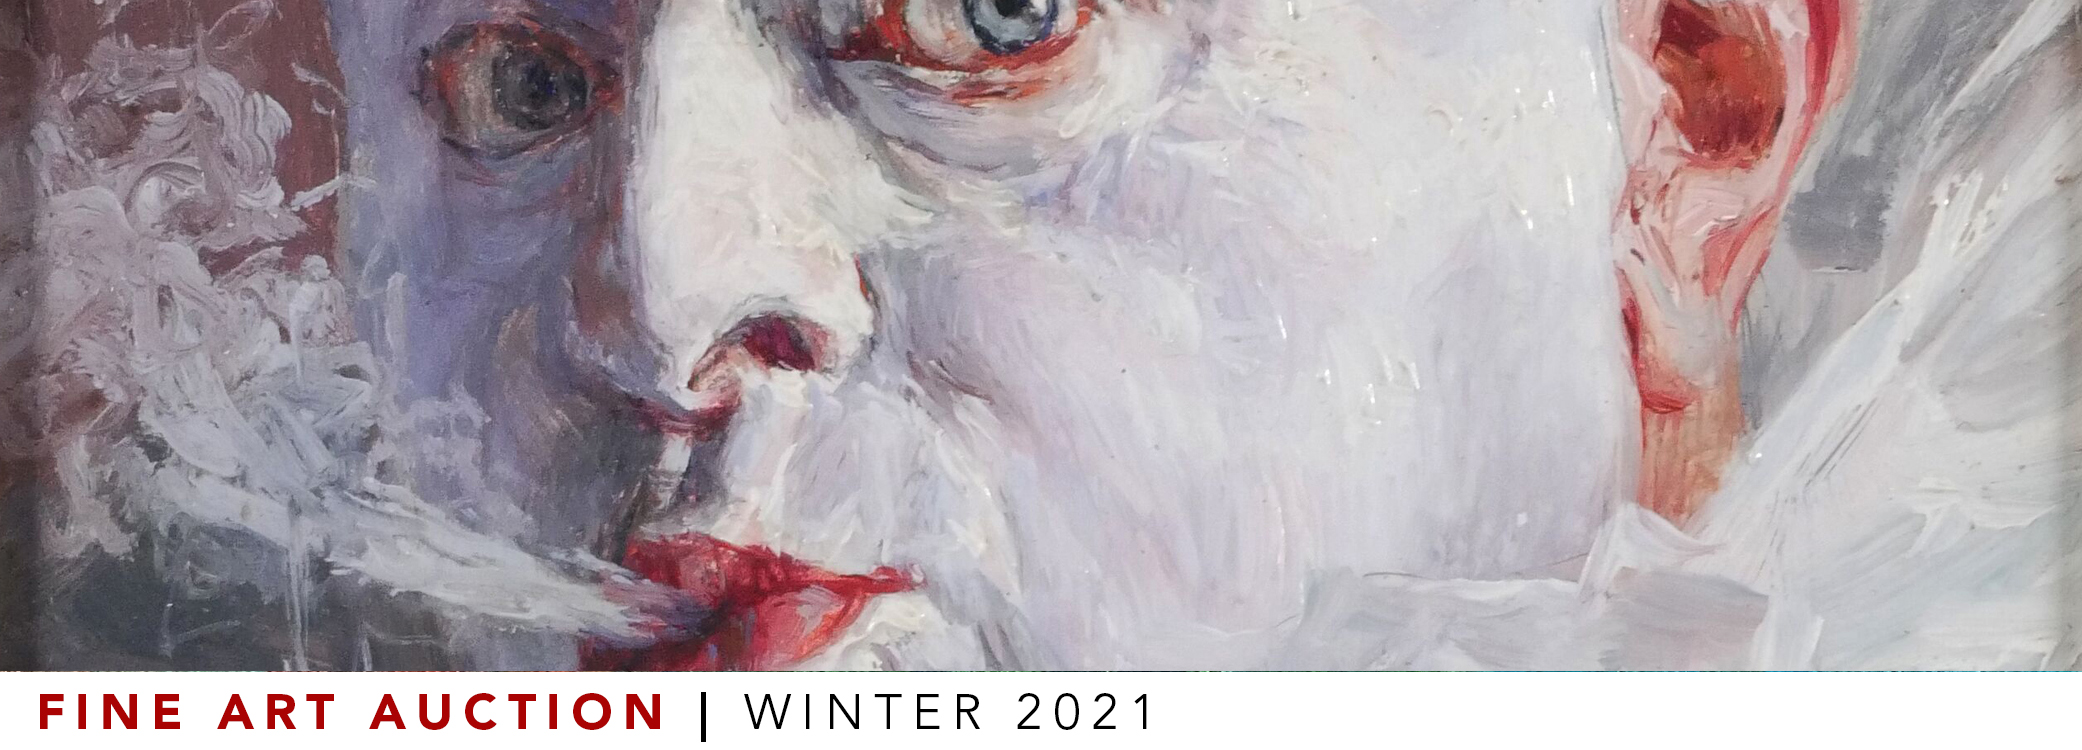 Myers - Auction Winter 2021 05